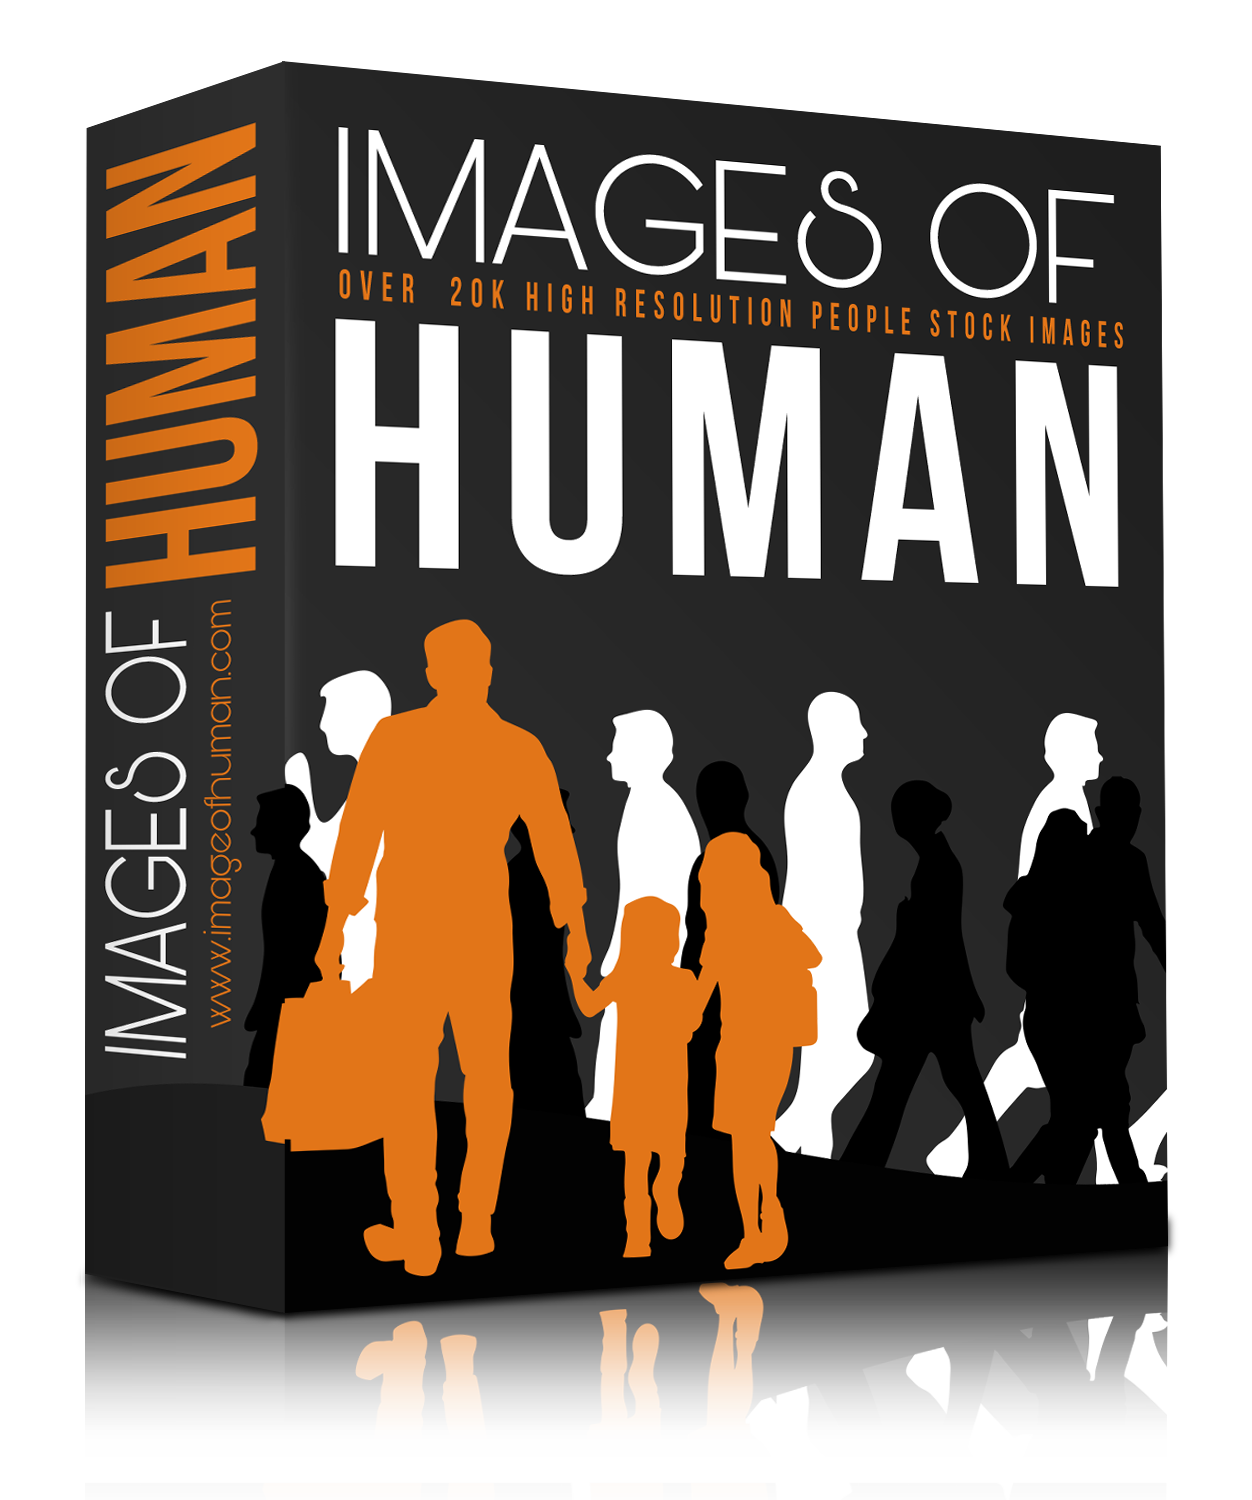 [GRAB IT FAST!] Images of Human Super Bundle By SuperGoodProduct Review : A Mammoth Collection Of High Quality People Stock Images Featured With More Than 20,000 High Resolution People Stock Images